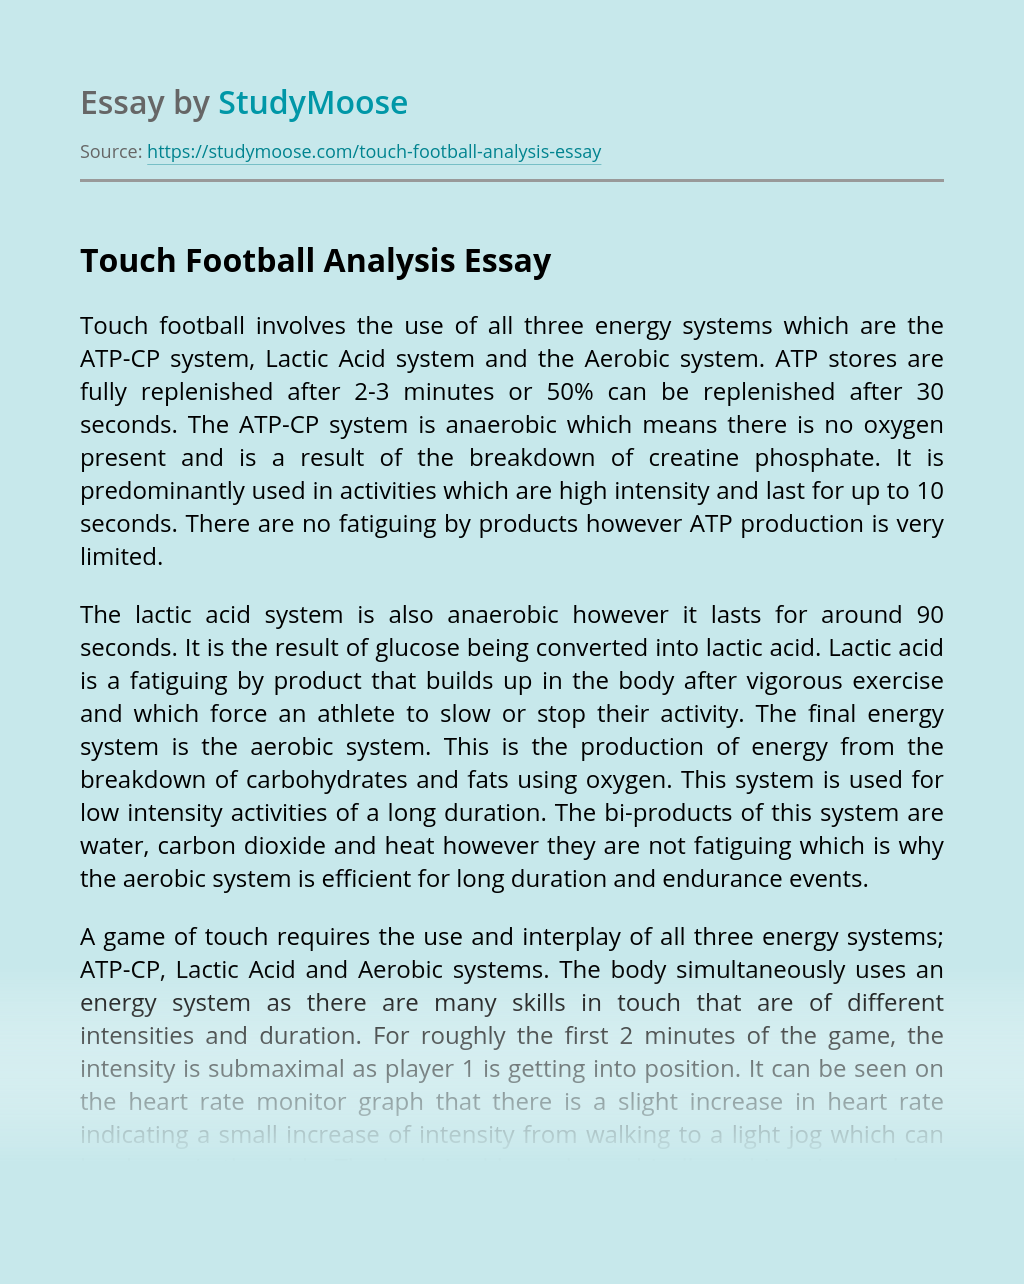 Touch Football Analysis